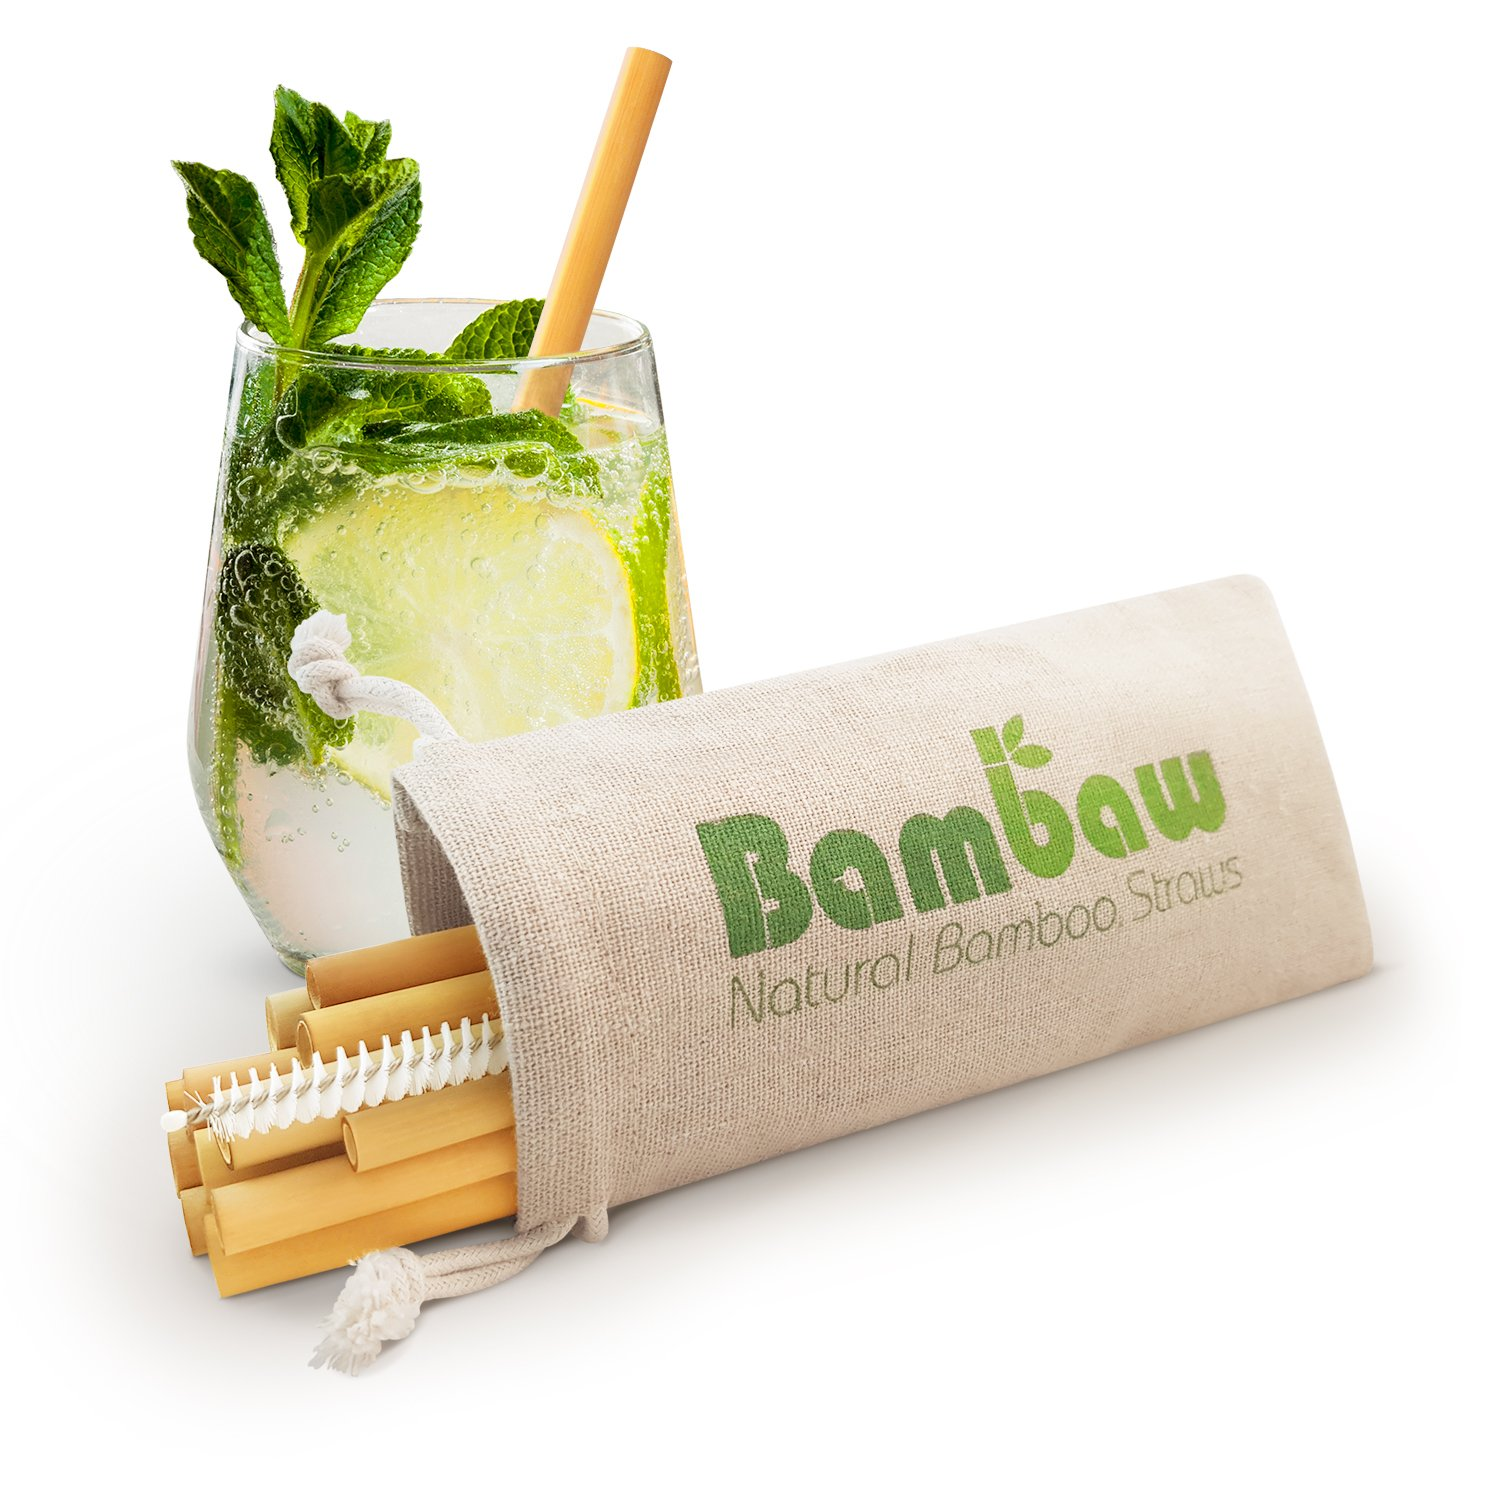 Reusable Bamboo Drinking Straws | BPA Free | Ecological Alternative to Plastic Straws | Strong & Durable Bamboo Multi-Usage Straw | 12 Straws | 5.1 inch | Bambaw